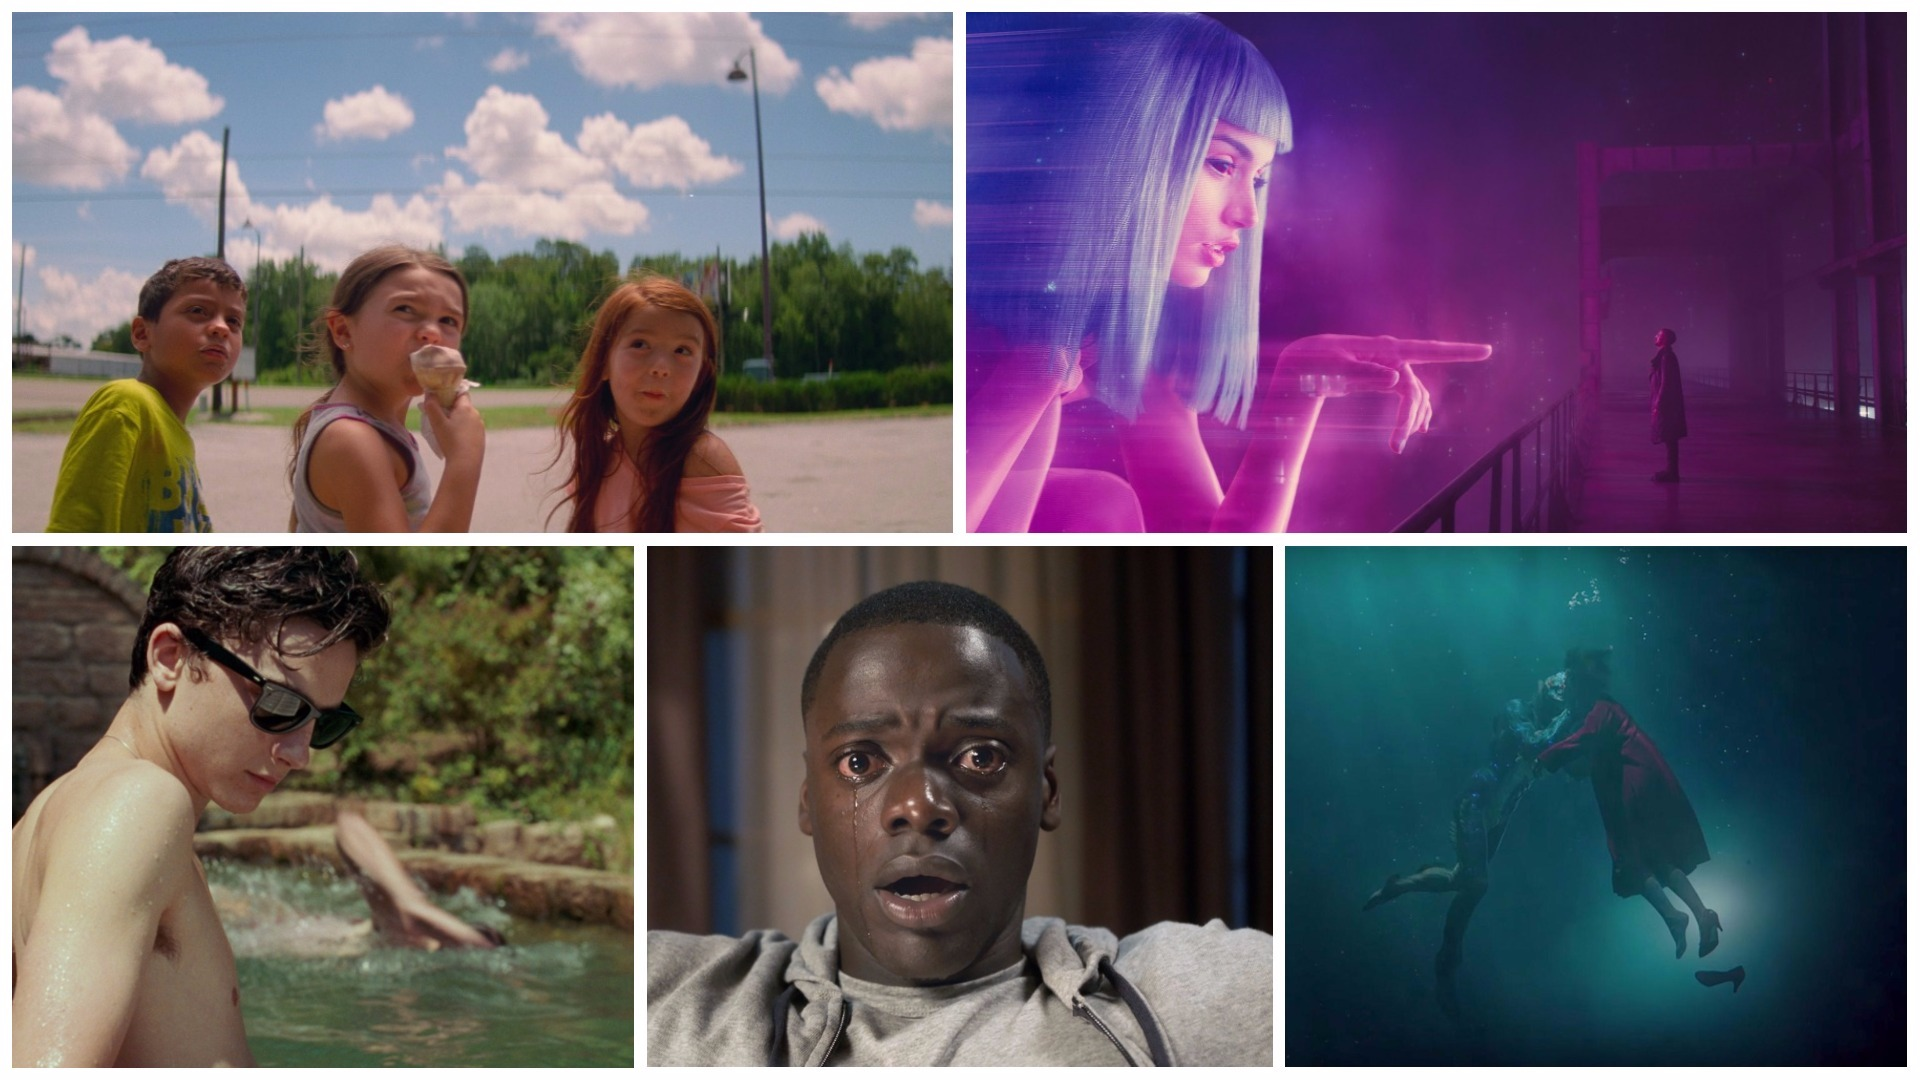 42 Directors Pick Their Favorite Movies of 2017, Including Denis Villeneuve, Guillermo del Toro, and More